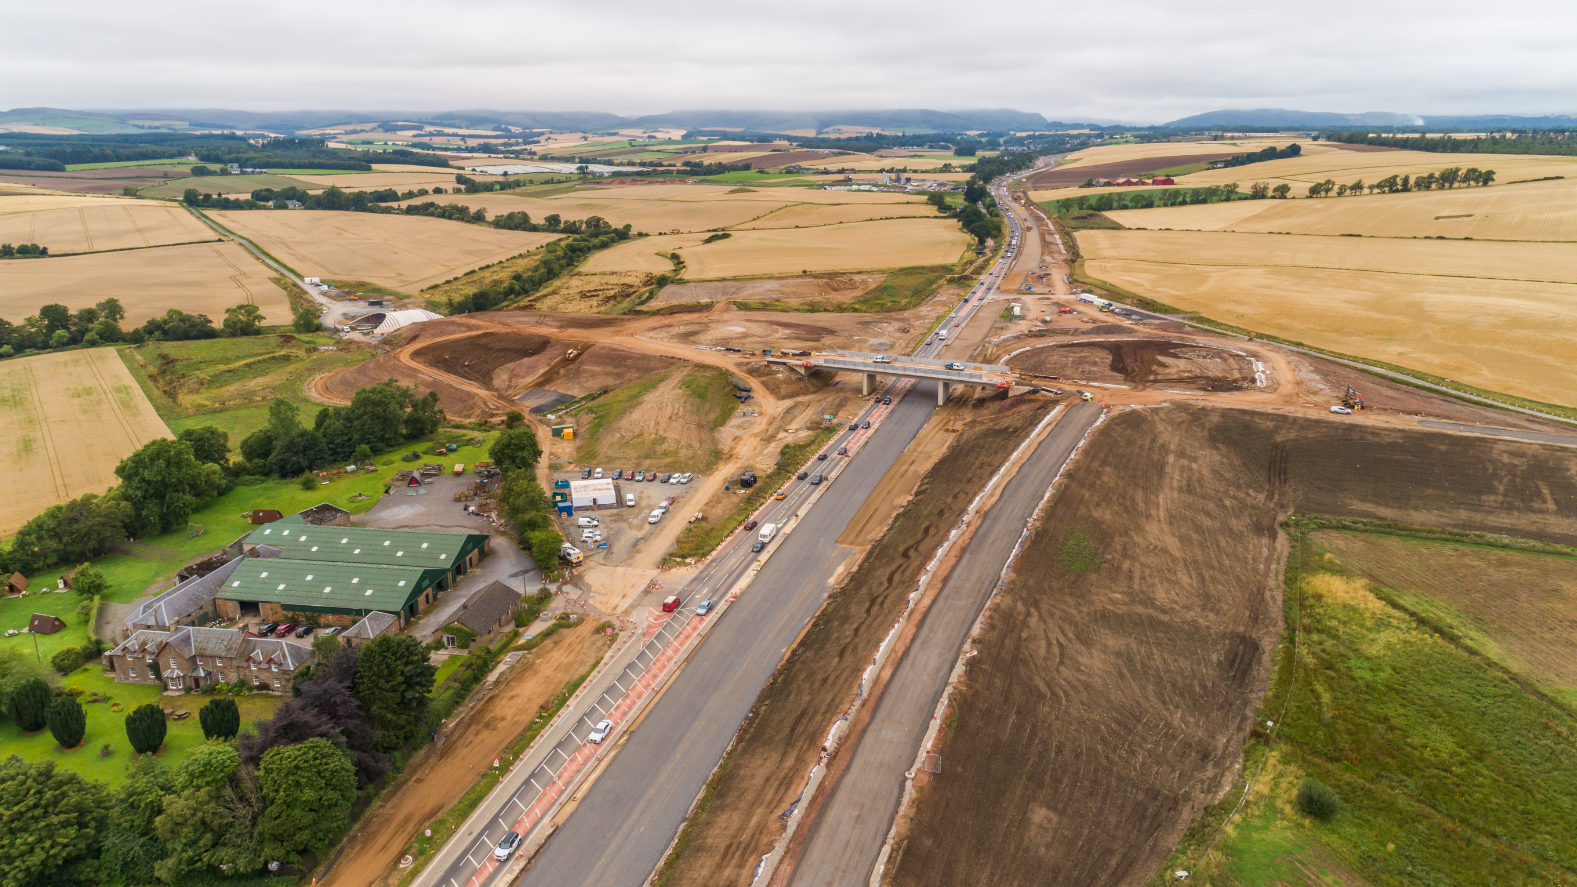 Aerial photo of the slip roads at the new Stanley/Tullybelton Junction.